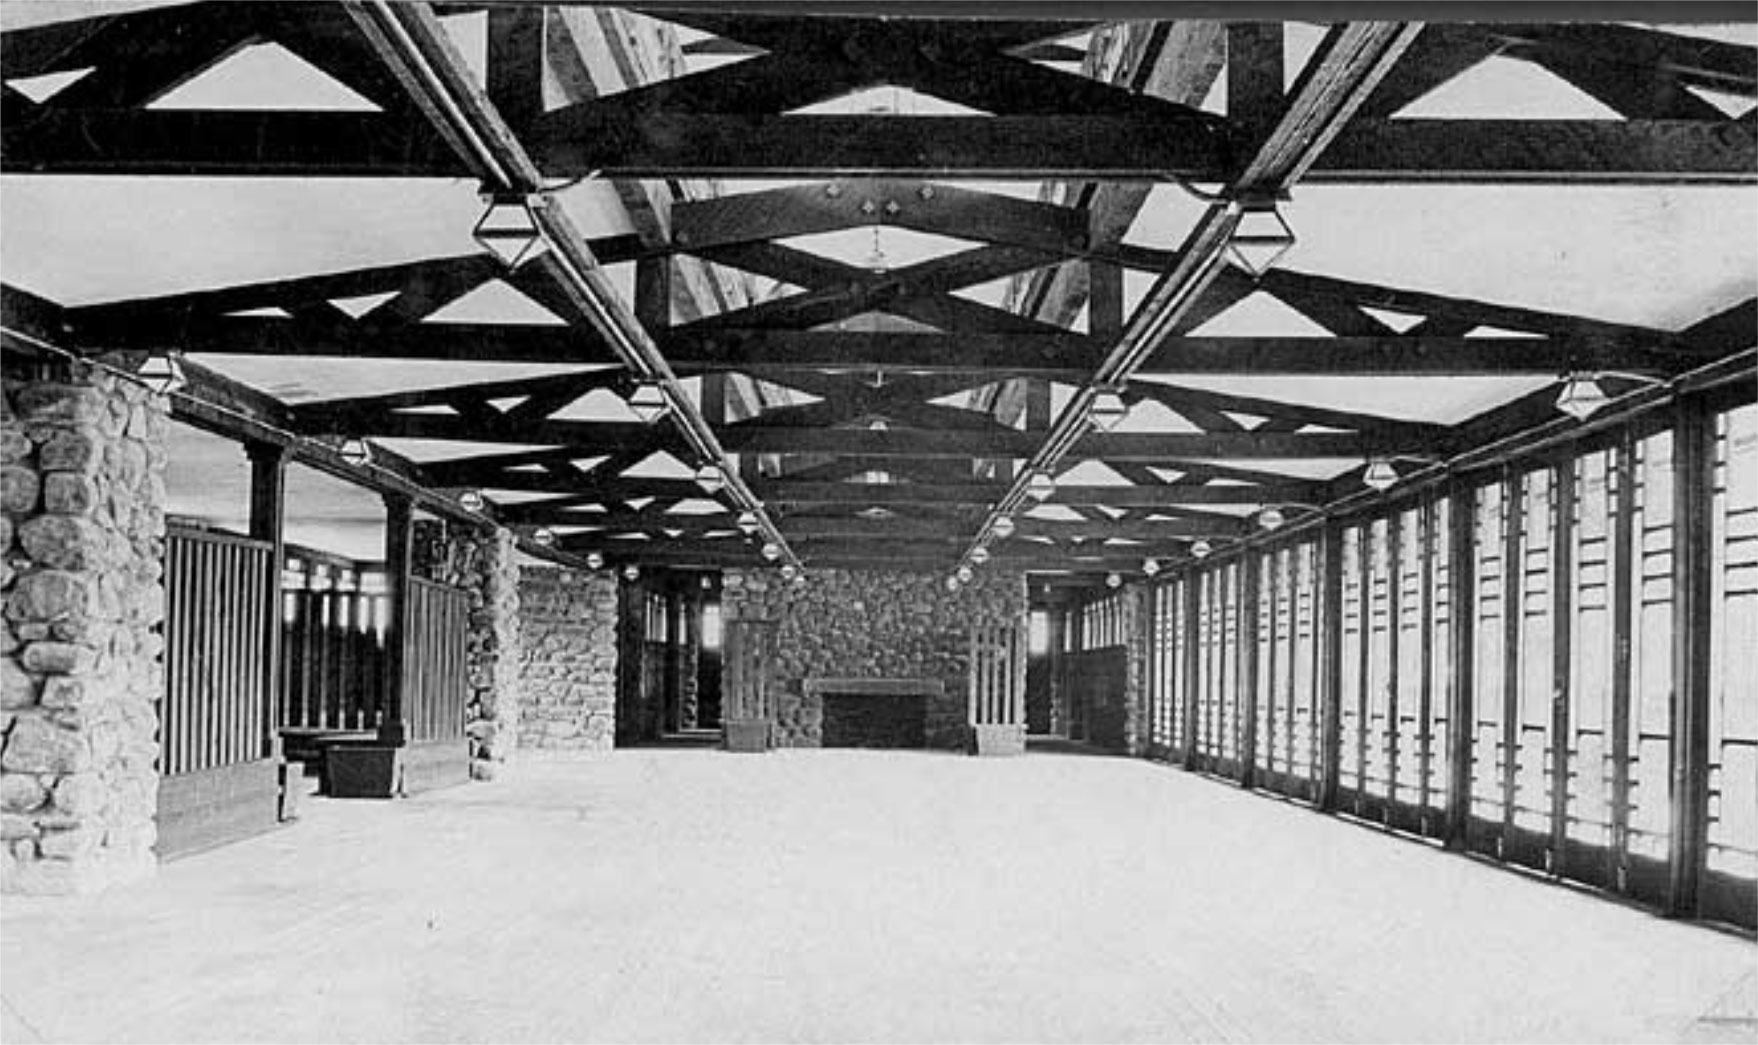 Interior of Frank Lloyd Wright's Banff Park Pavilion. Courtesy of Frank Lloyd Wright Revival Initiative.